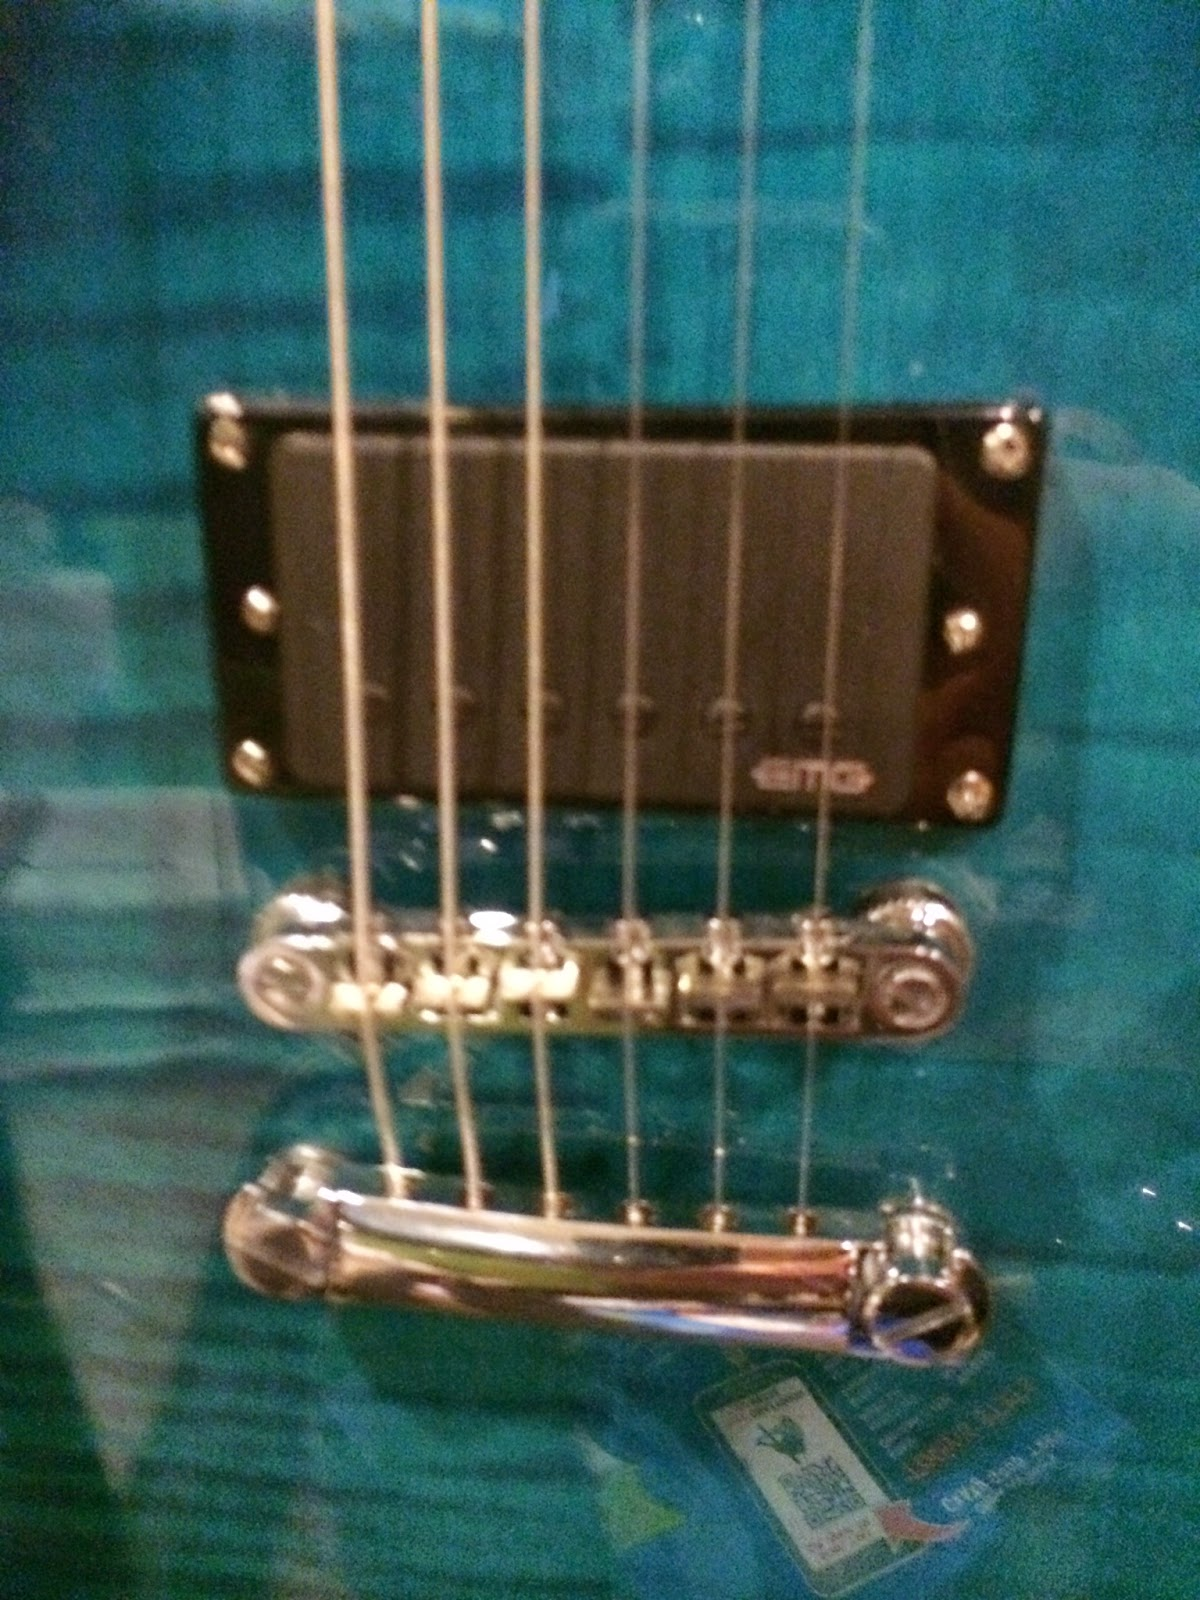 hight resolution of above is the pickup installed in my epiphone custom shop les paul special ii plus top it goes in the bridge position and due to the abq push pull volume